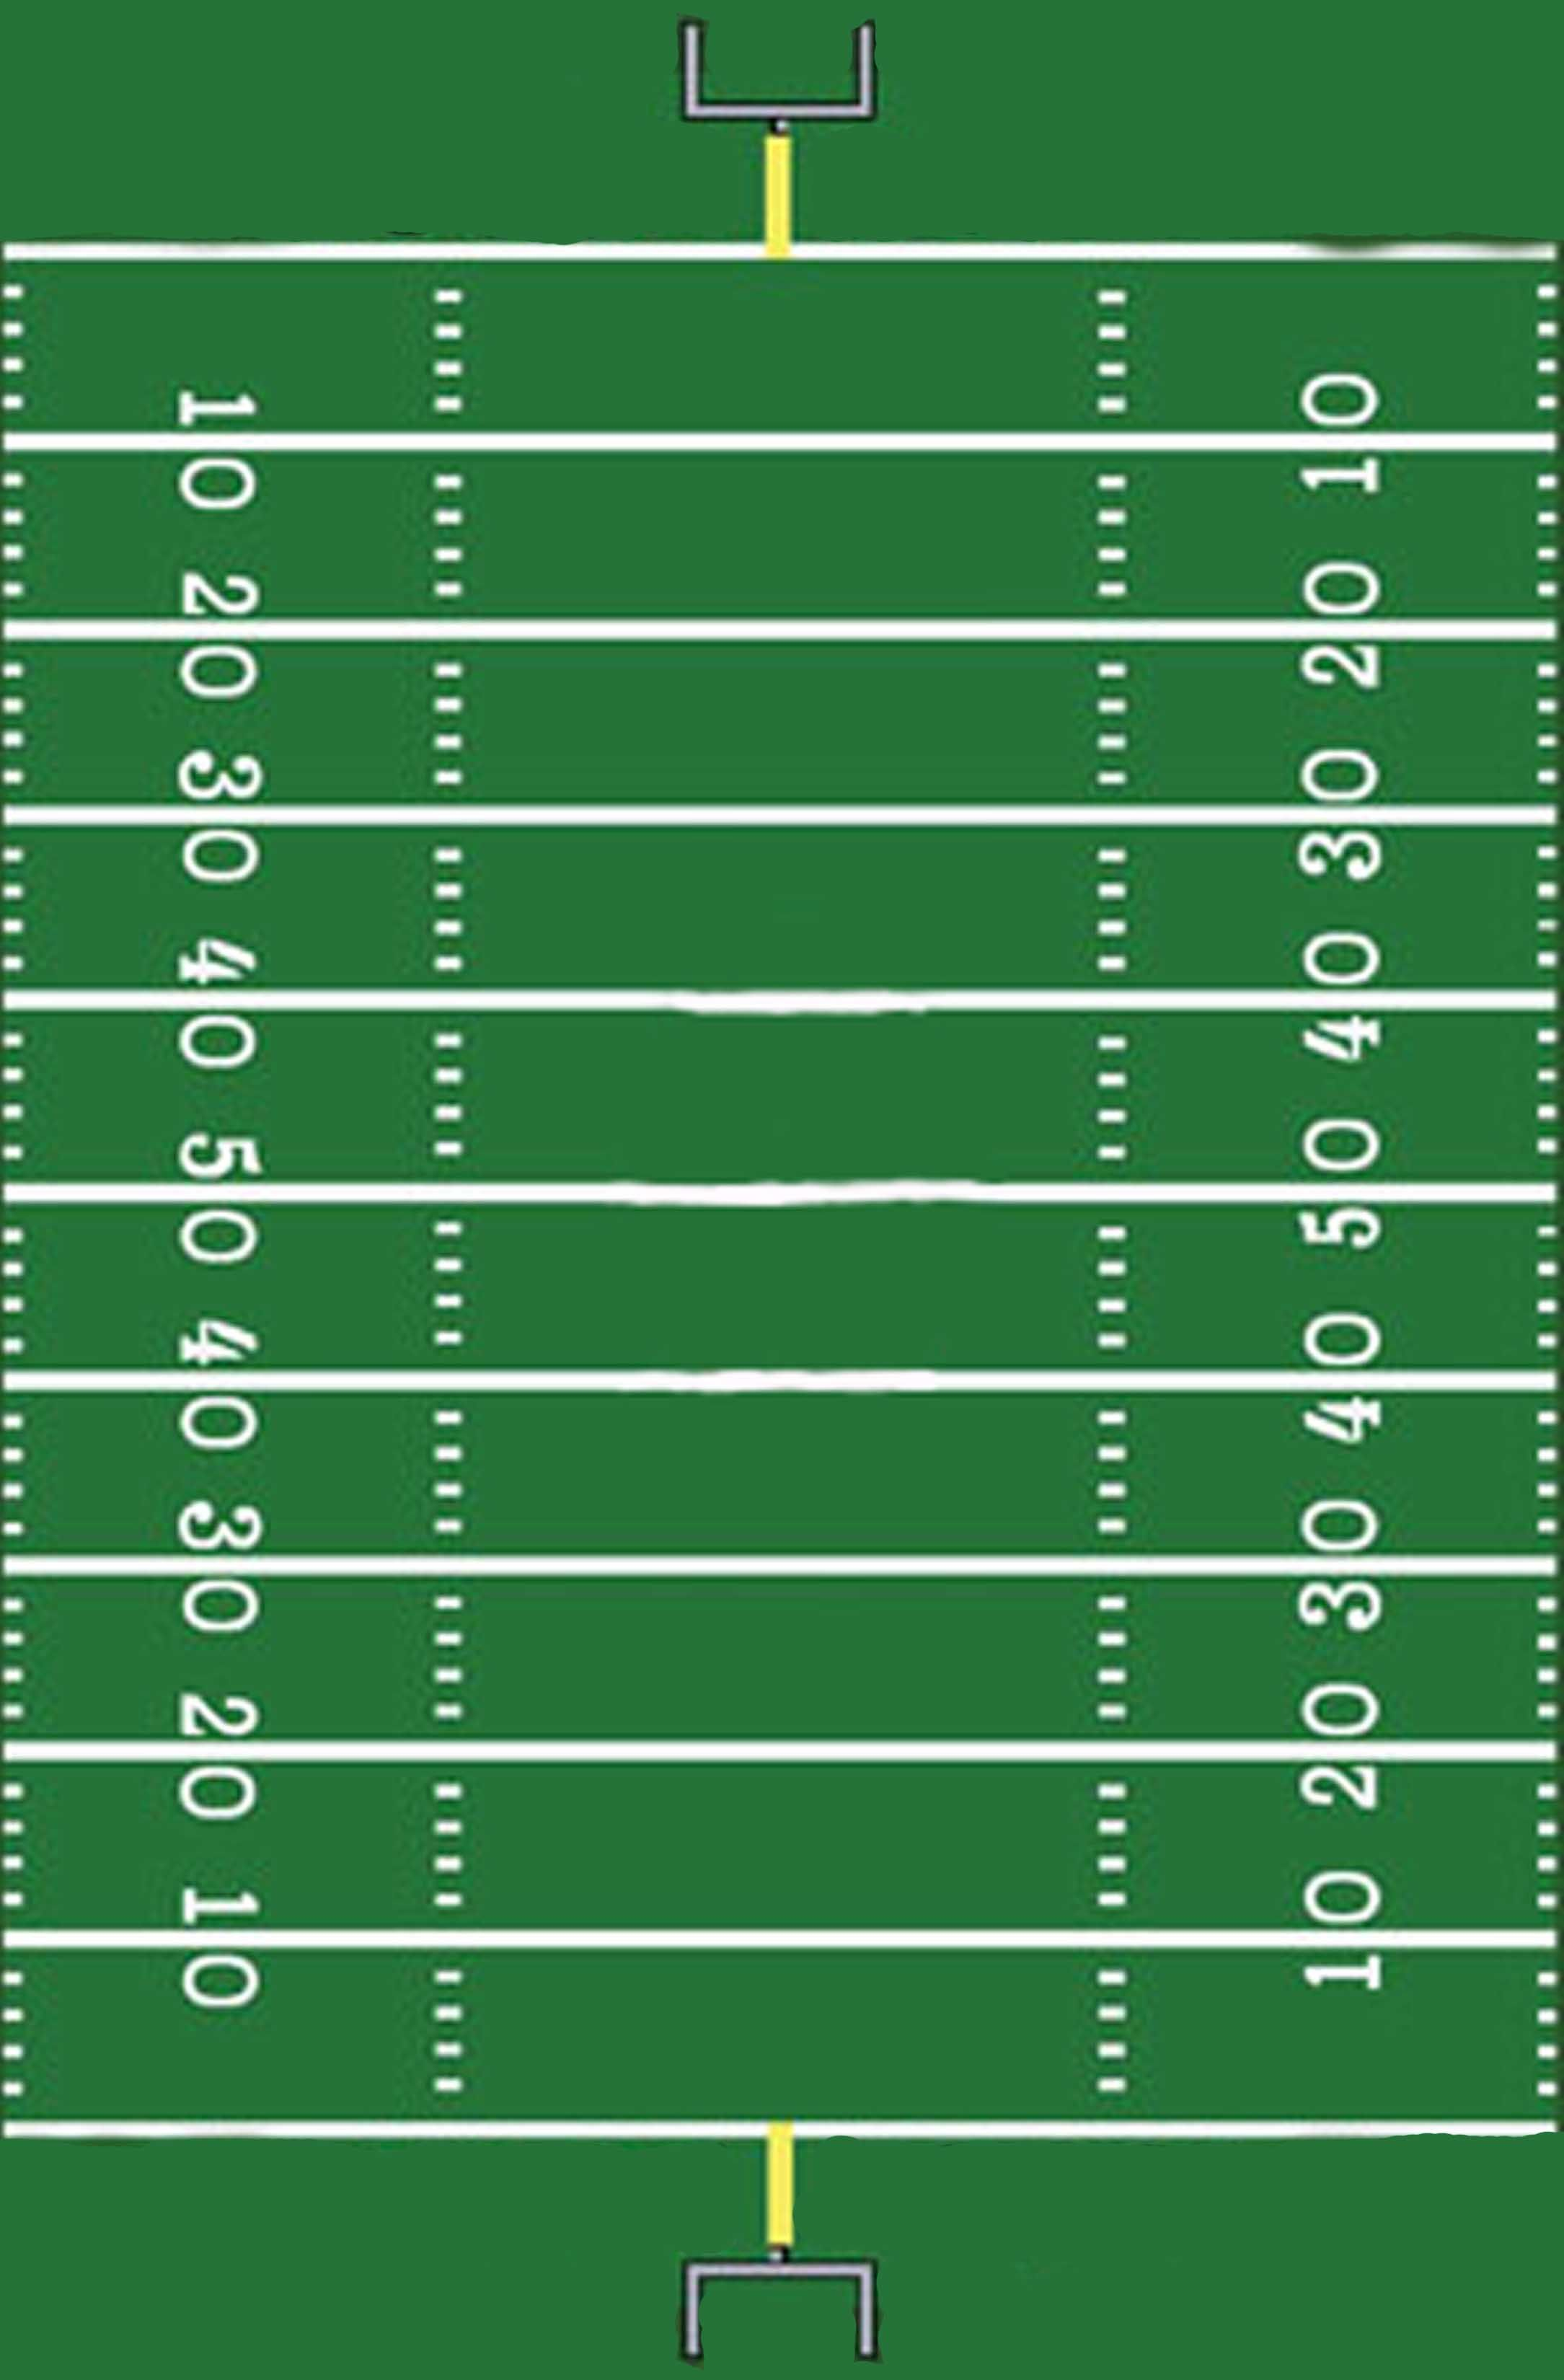 Football Pitch Diagram To Print 1157 Bulb Wiring Out This Field And Let Your Kids Track The